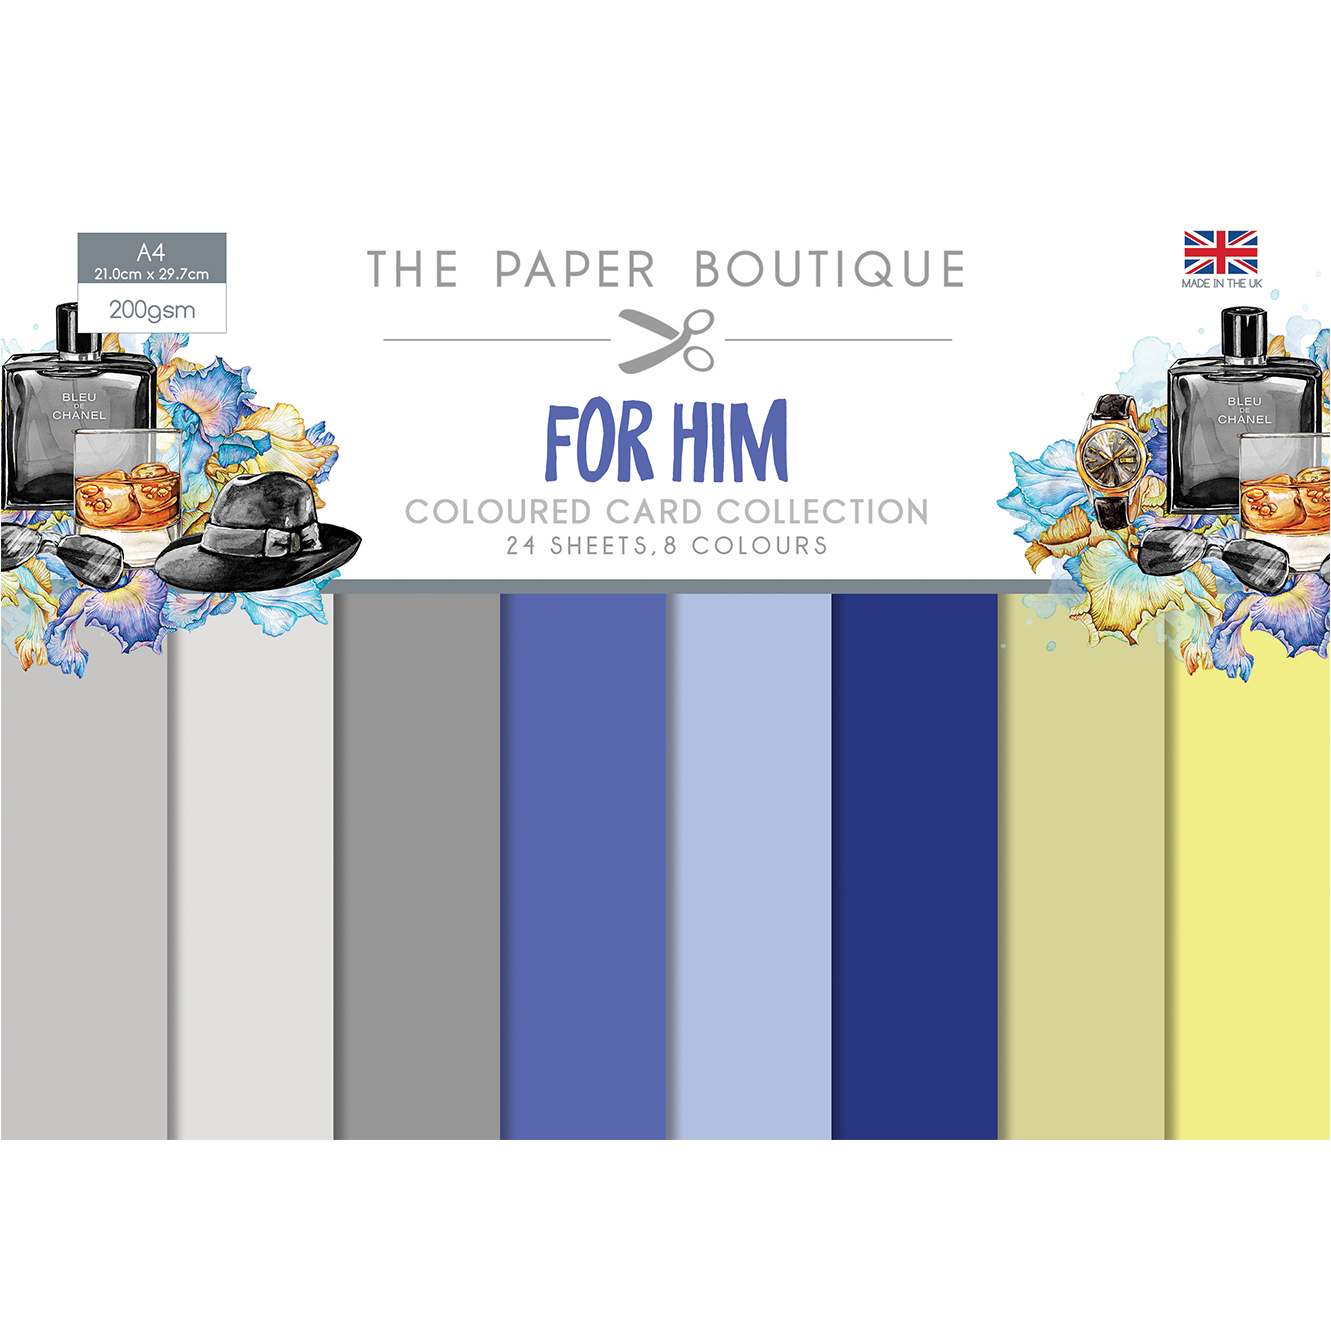 The Paper Boutique For Him Coloured Card Collection